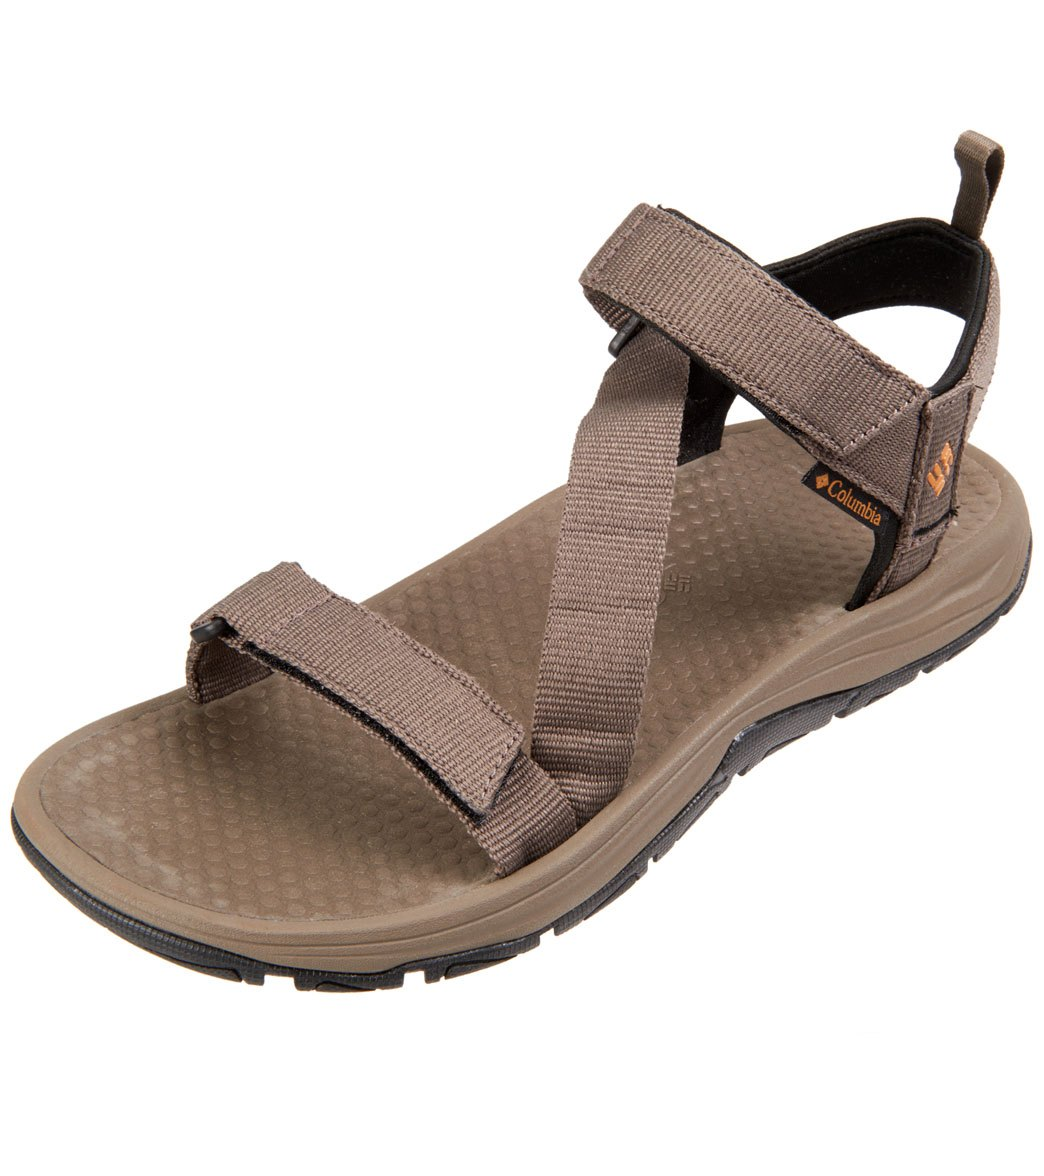 de918722 Columbia Men's Wave Train Sandal at SwimOutlet.com - Free Shipping